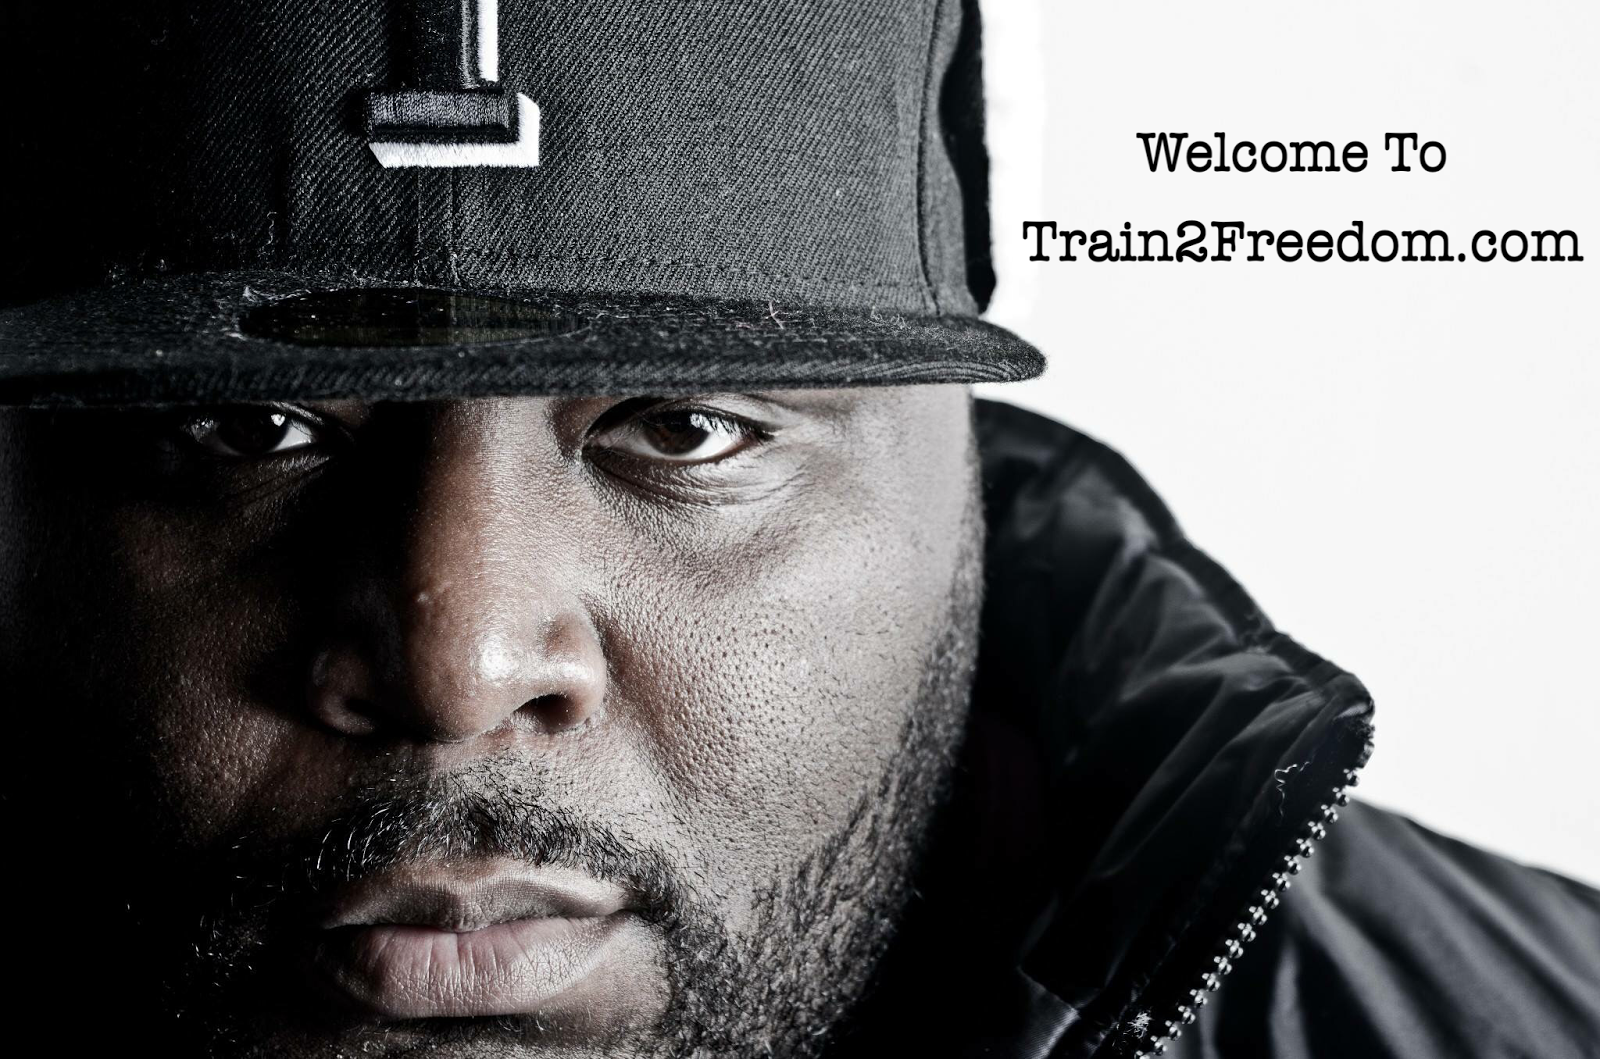 Welcome To Train2Freedom.com